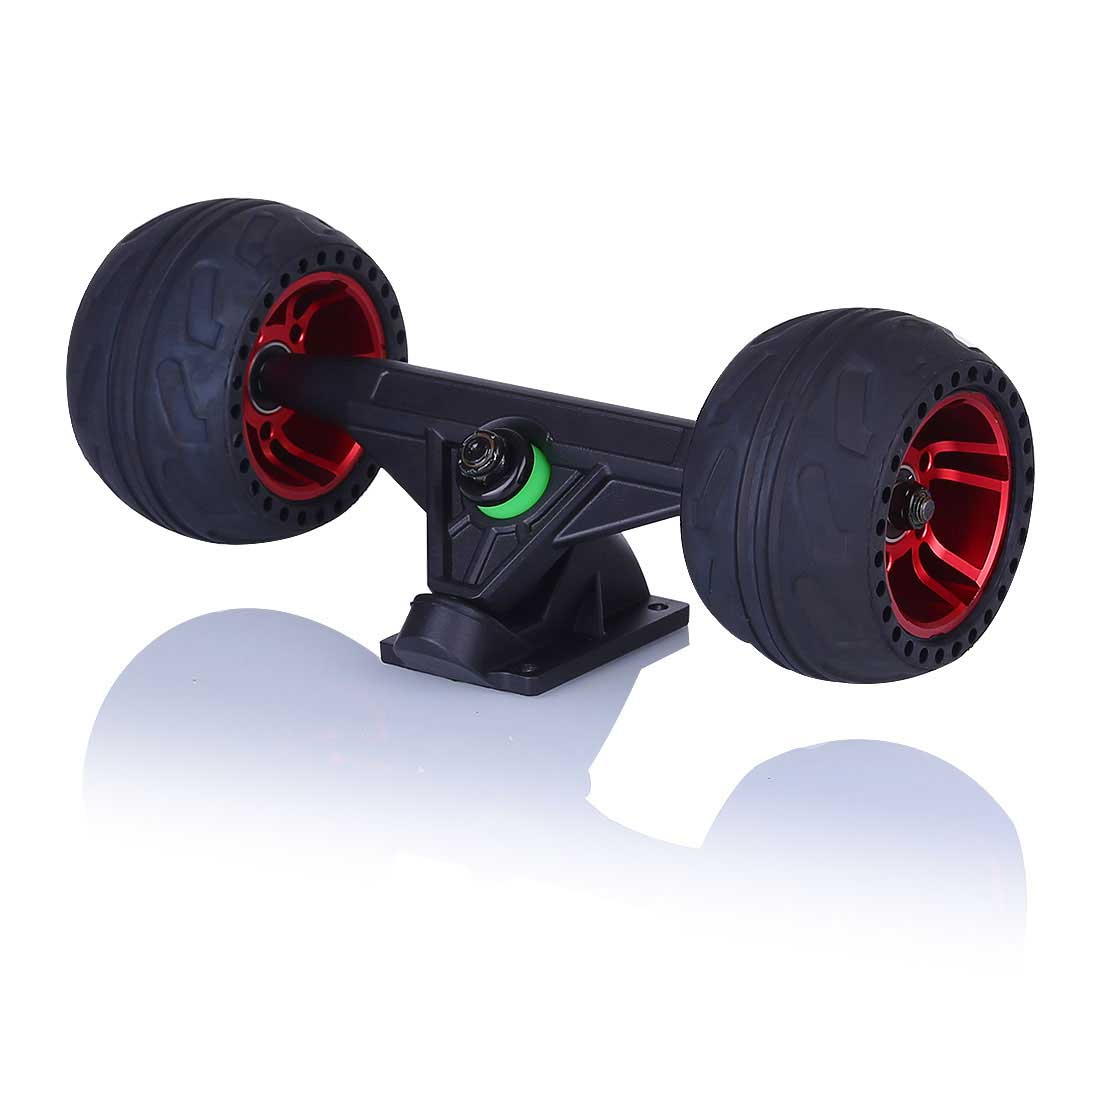 105mm All Terrain Rubber Wheels Kit